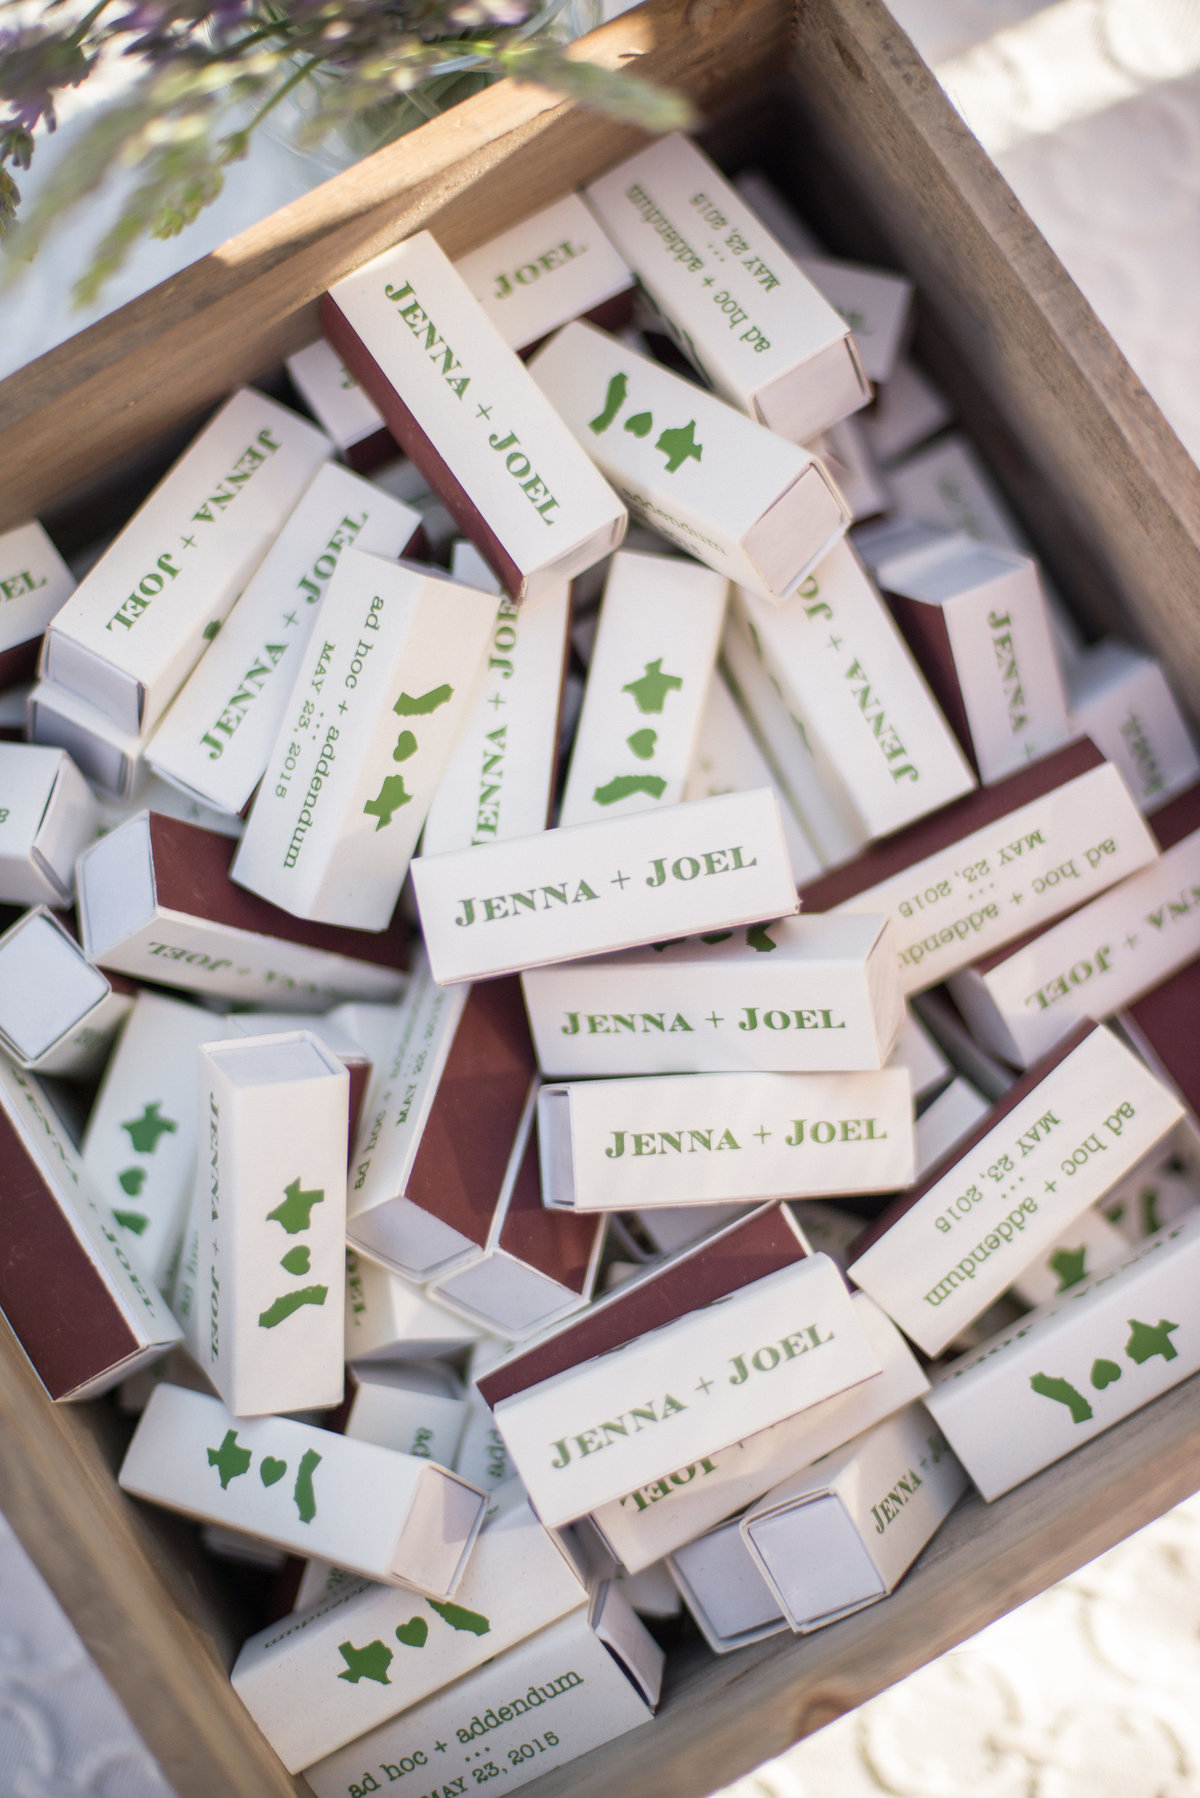 Monogrammed favors for wine country engagement party dinner by Jenny Schneider Events.